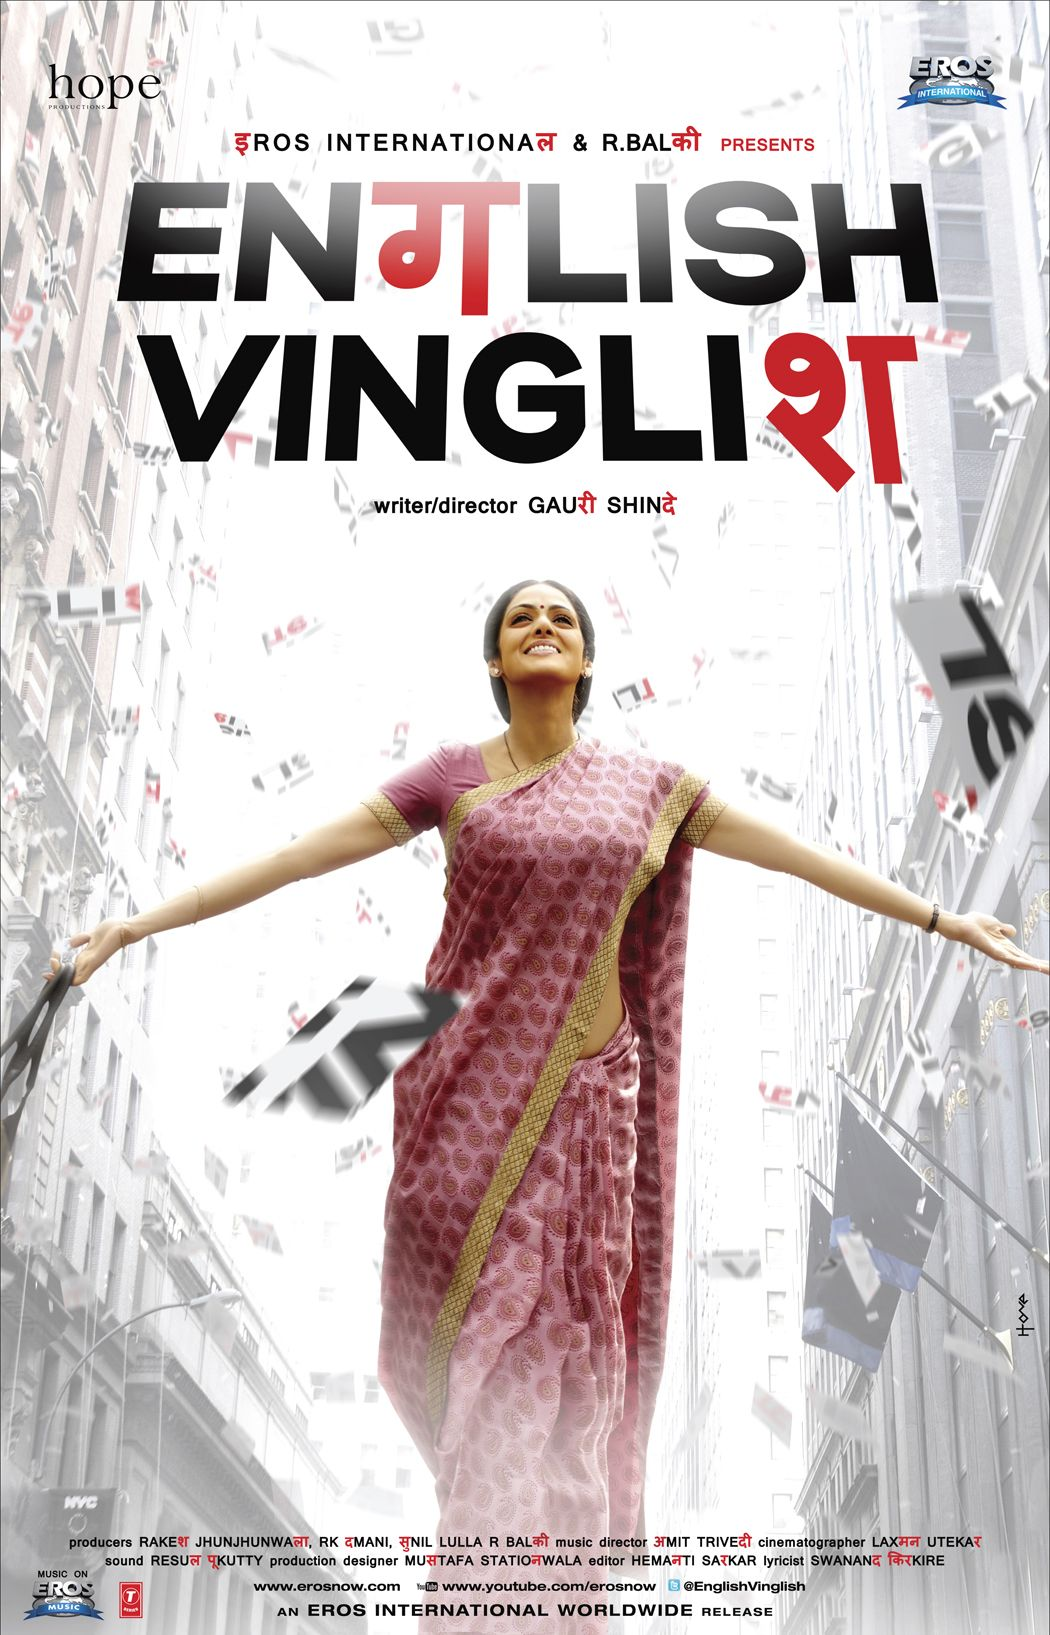 3.5★ English Vinglish. A sweet film about self empowerment